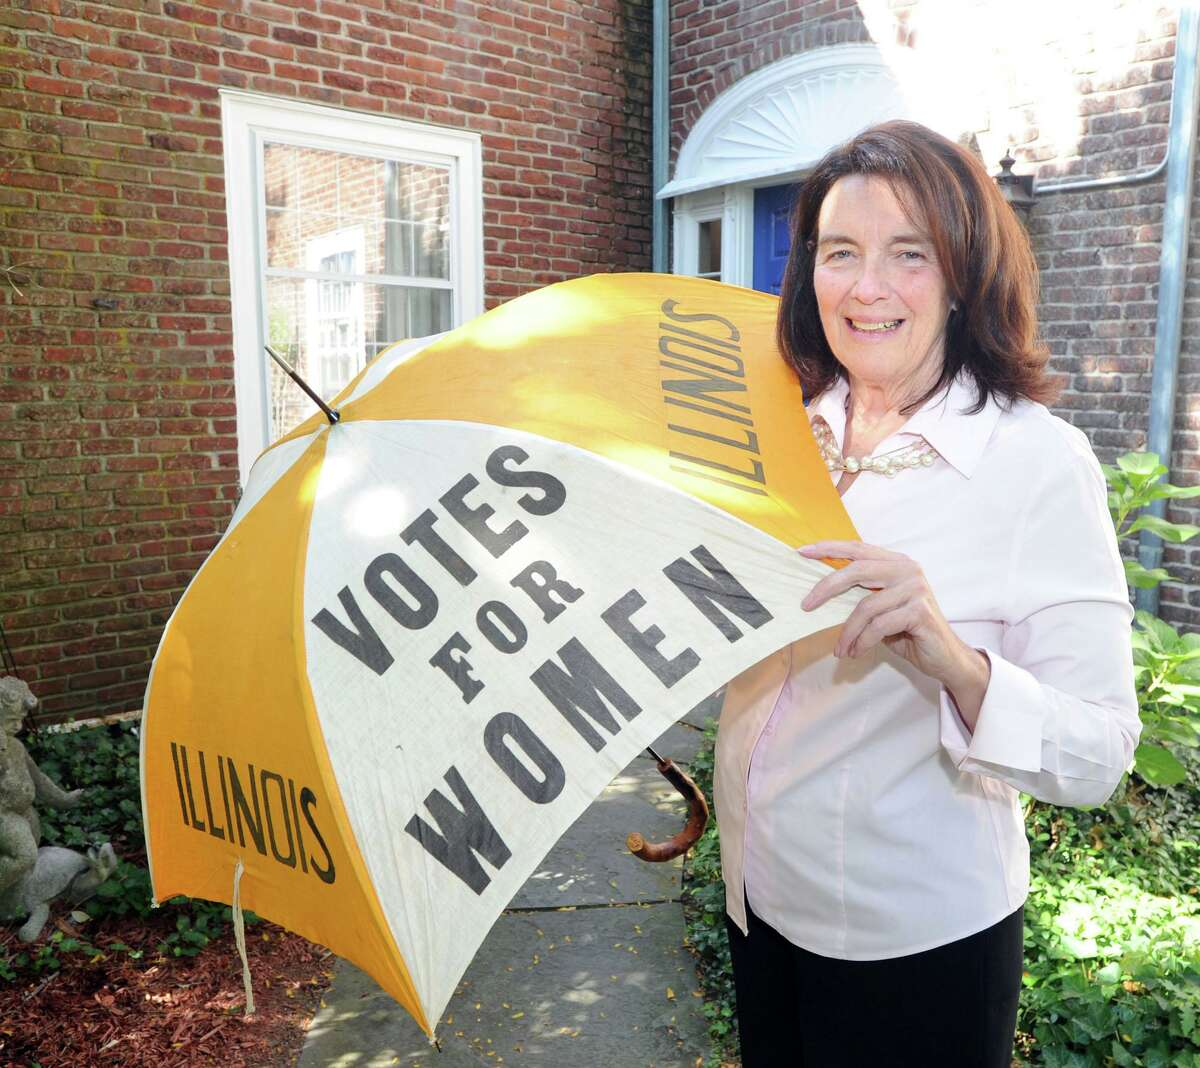 Coline Jenkins, the great-great-granddaughter of suffragette Elizabeth Cady Stanton, with an umbrella advocating the vote for women from the around the late-19th or early-20th century, at her home in Greenwich, Conn., Thursday, Oct. 6, 2016.